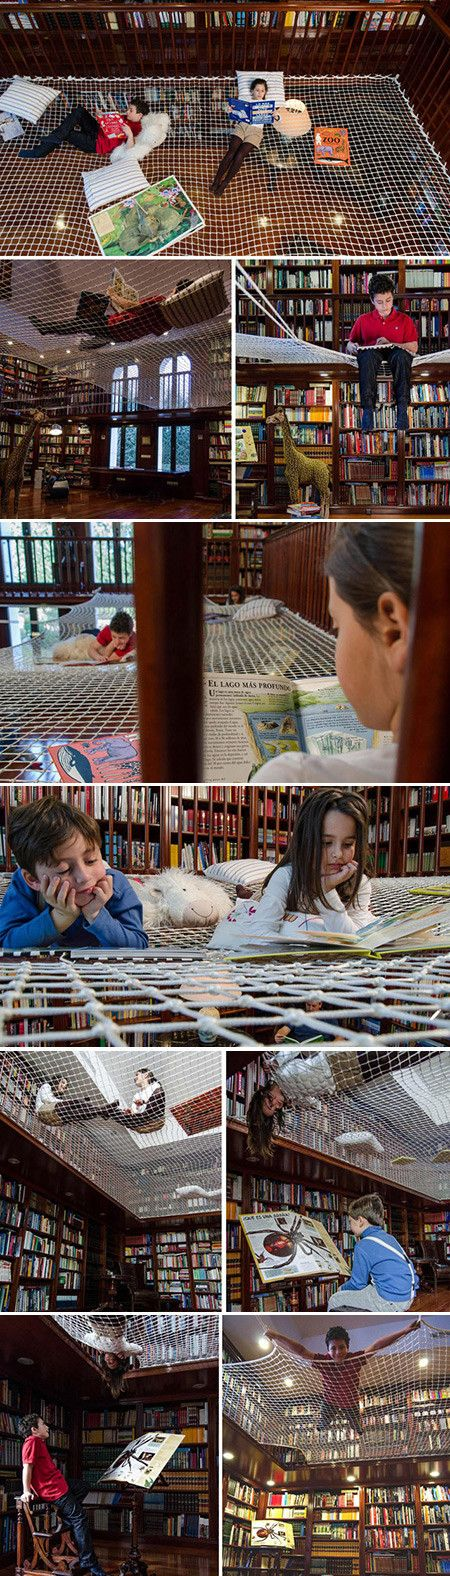 With this fun design, no longer will parents have to distinguish between play time and reading time. The Reading Net, by creative studio Playoffice, is a lively design that encourages learning through playing. The Madrid-based studio transformed the idea of a formal library into this interactive net that can be installed in the home. The unique space provides a happy solution for both parents and kids alike.